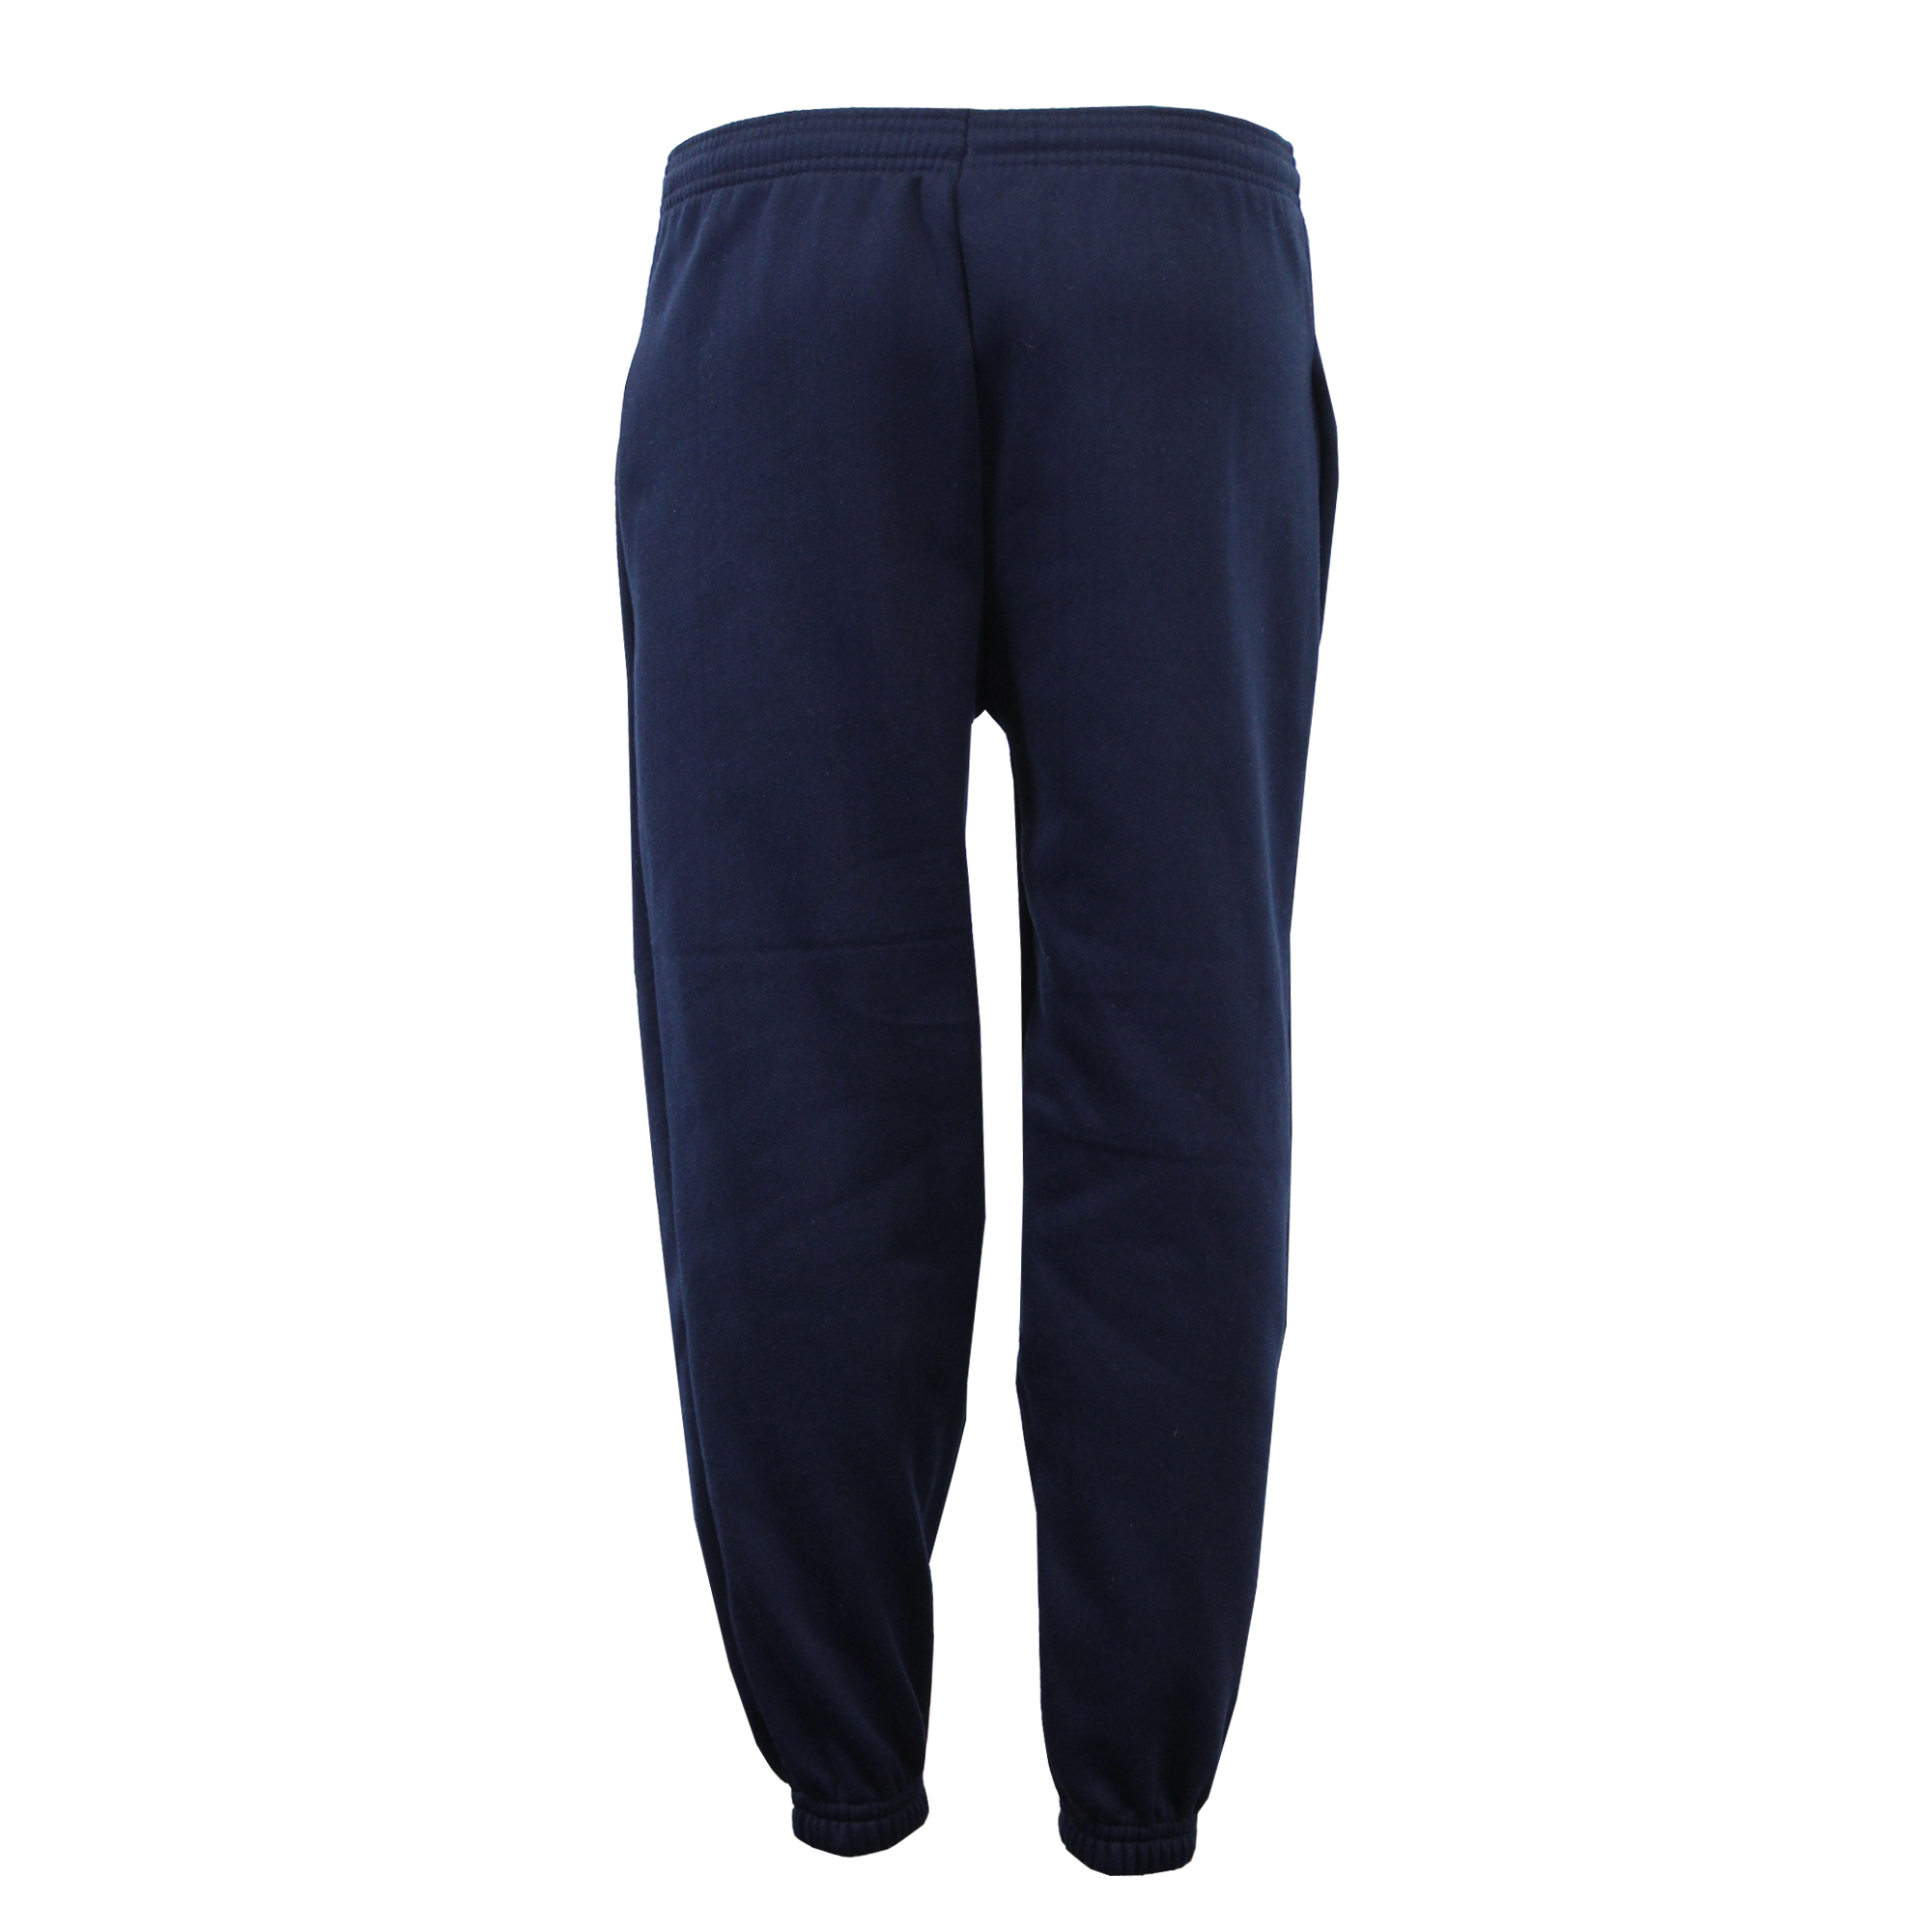 Tracksuit Bottoms products View all back to school Get a great look for your kids before heading back to school with our collection of tracksuit bottoms and sweatpants that are an essential for PE kit when the weather is cooler.